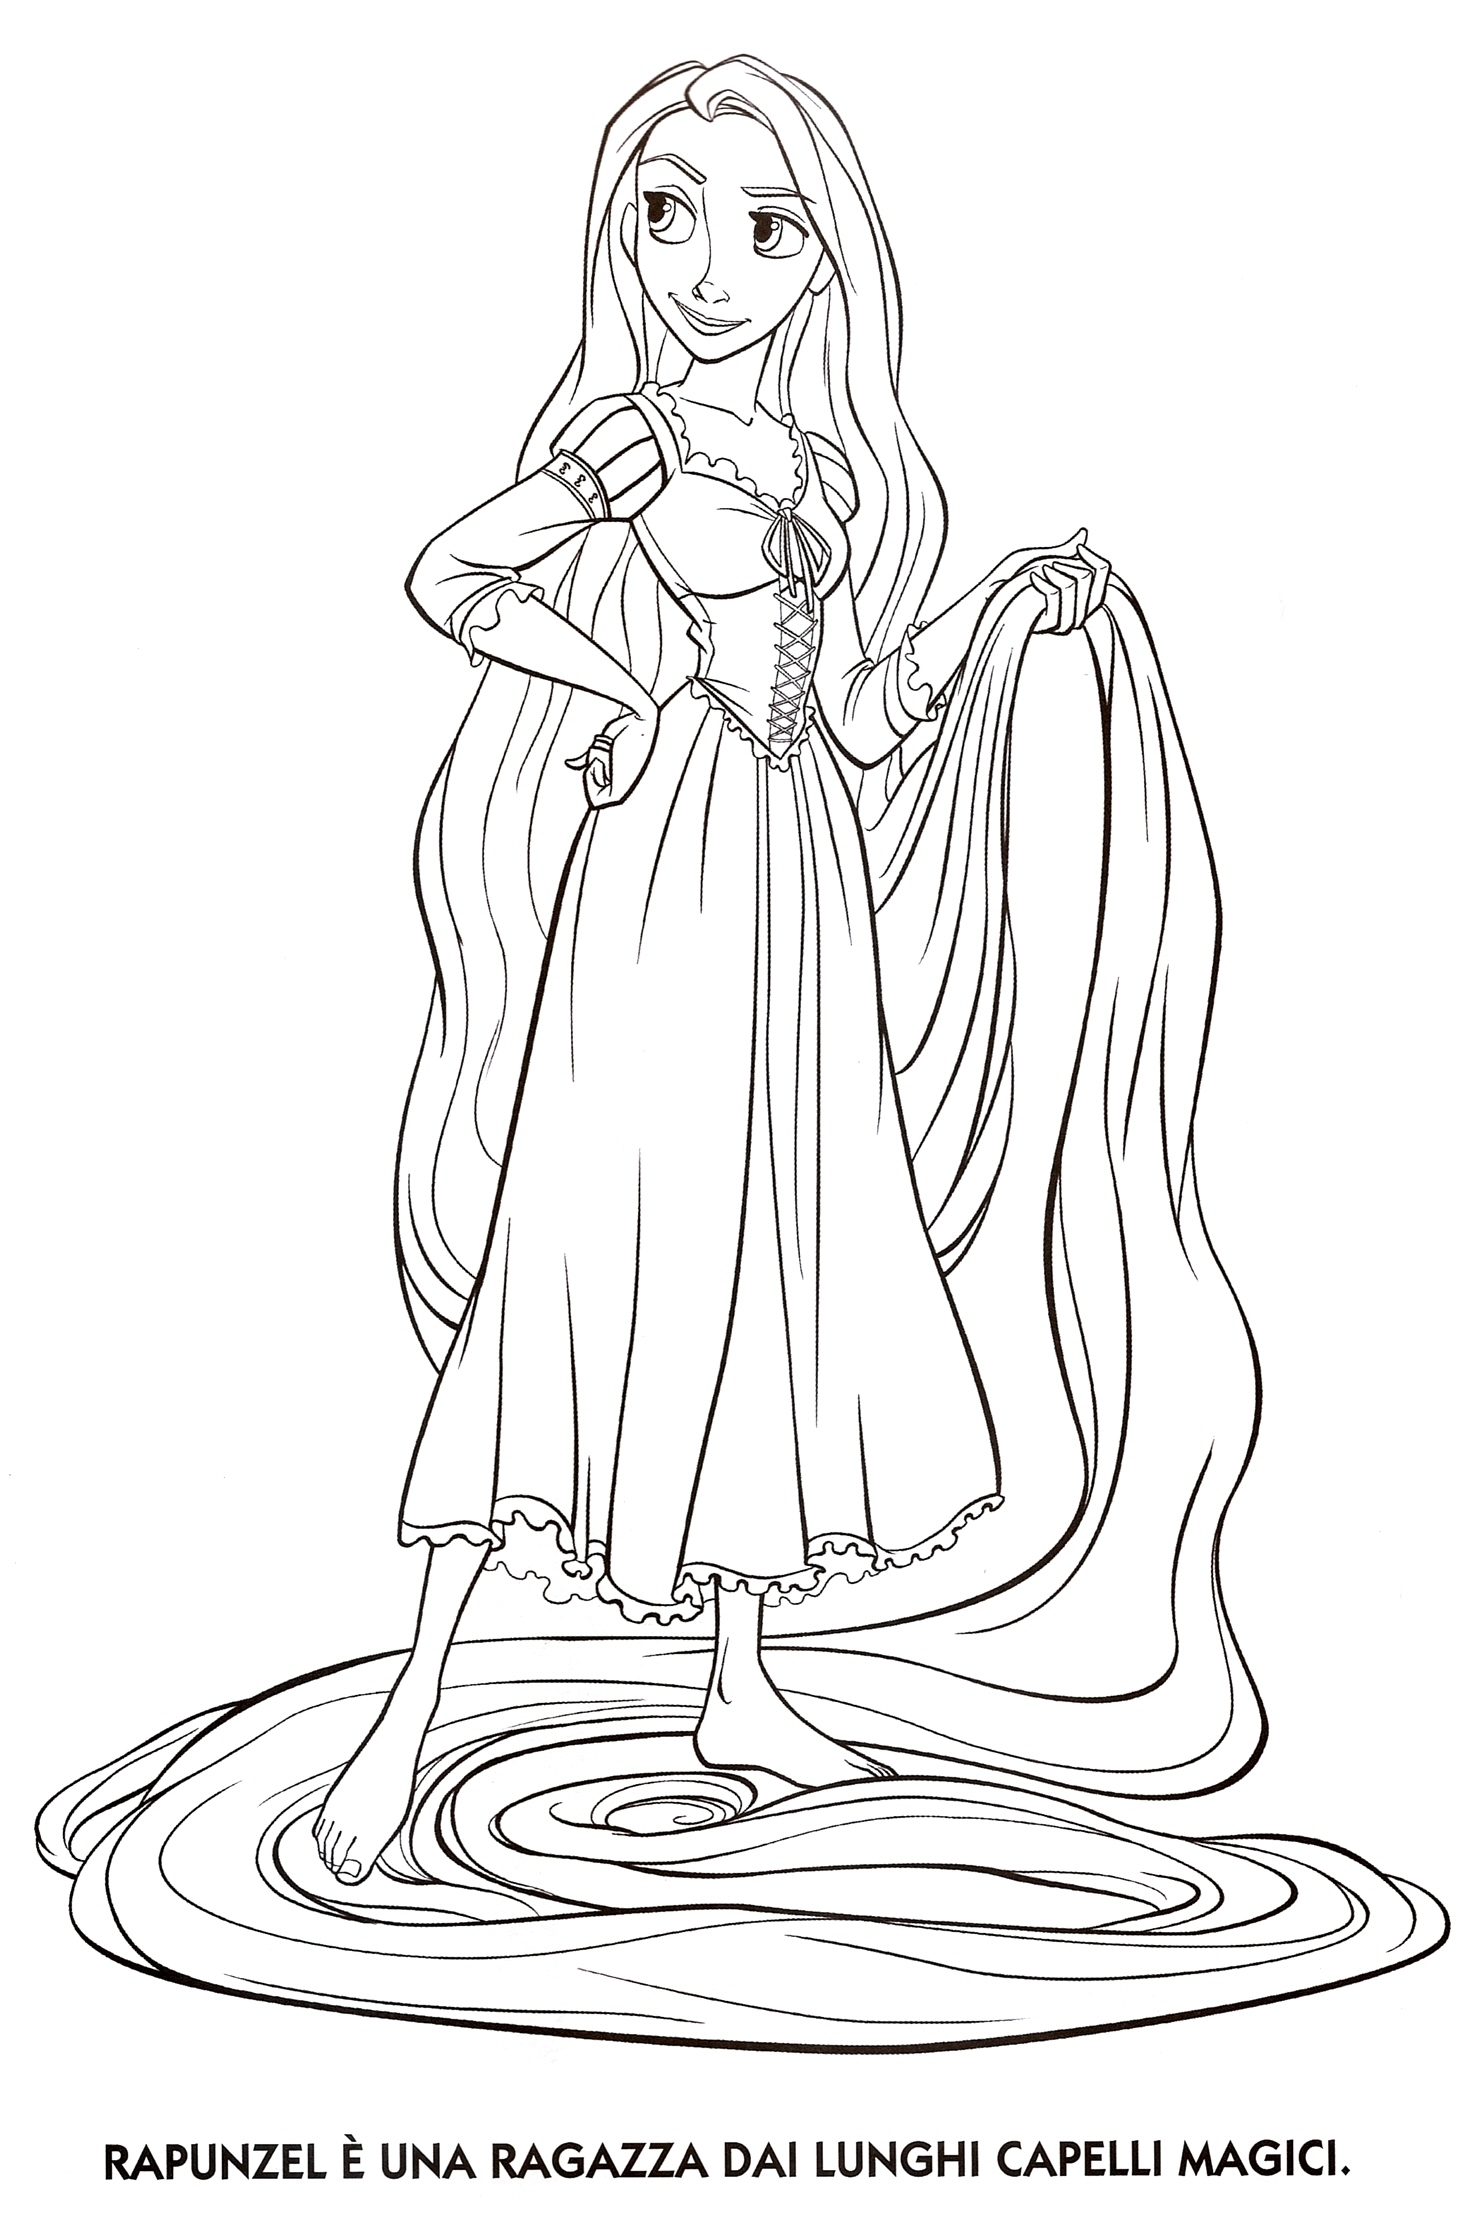 rapunzel coloring pages - index